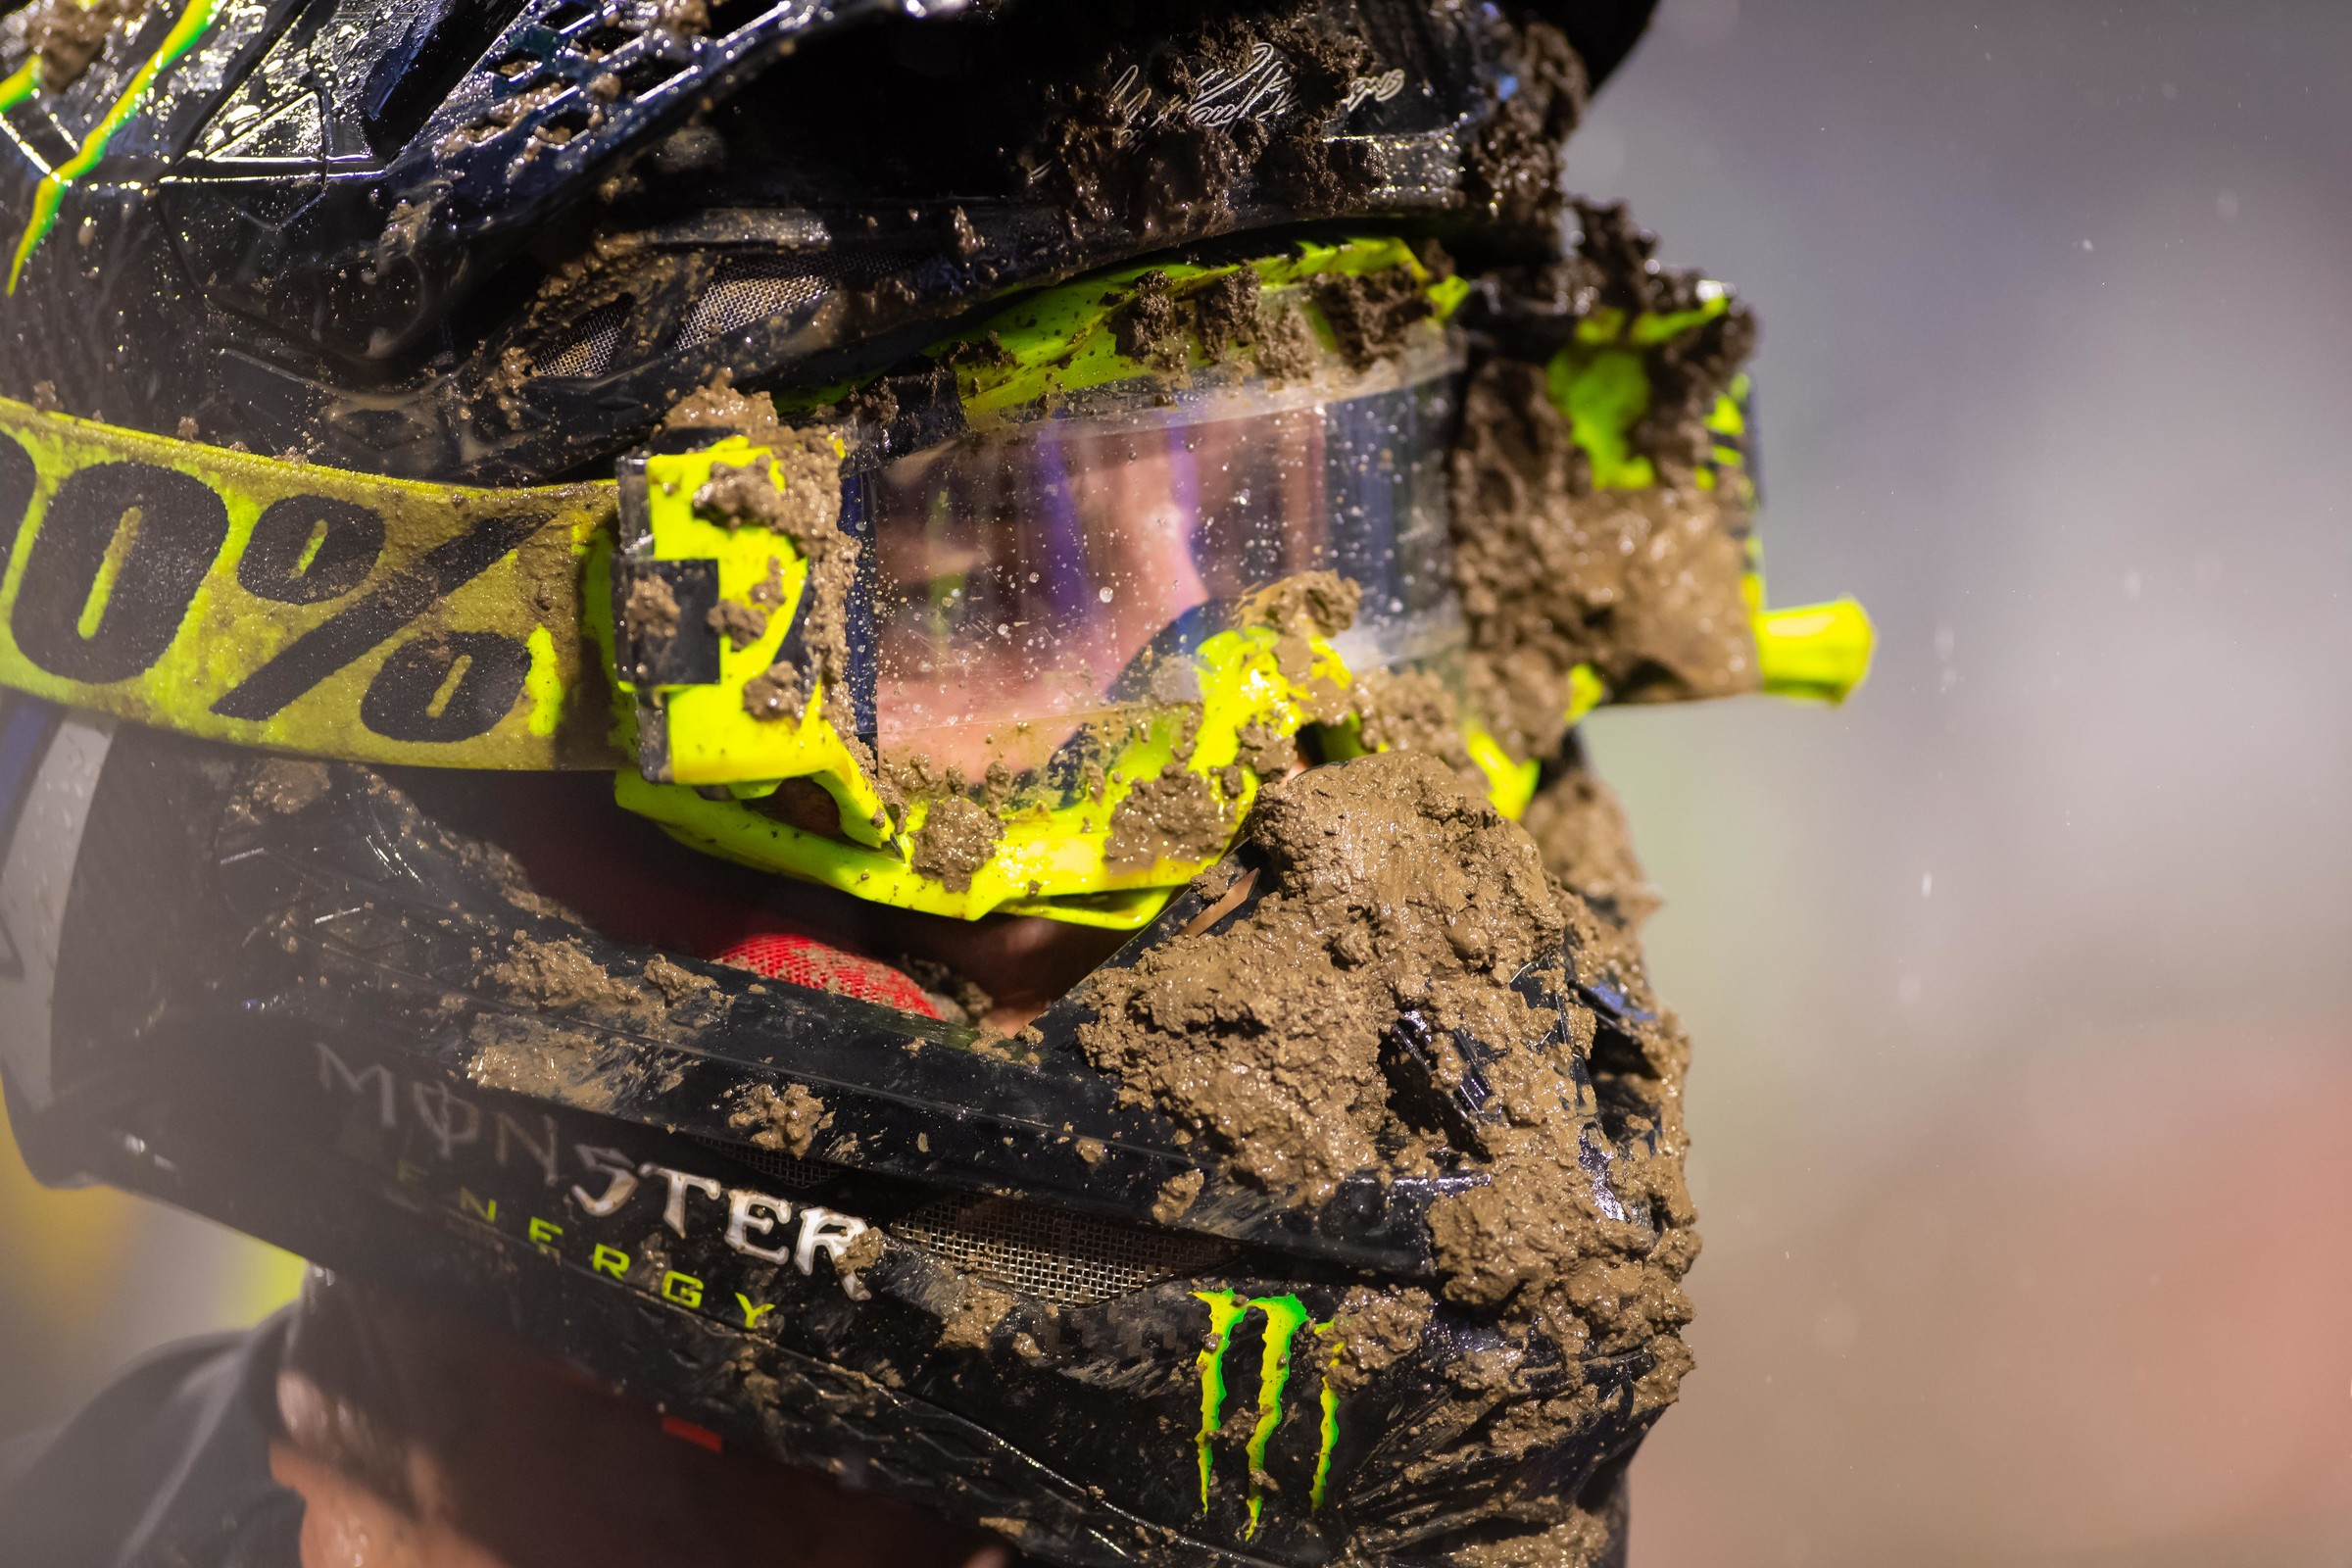 All riders had to deal with the mud, but it affected some more than others.